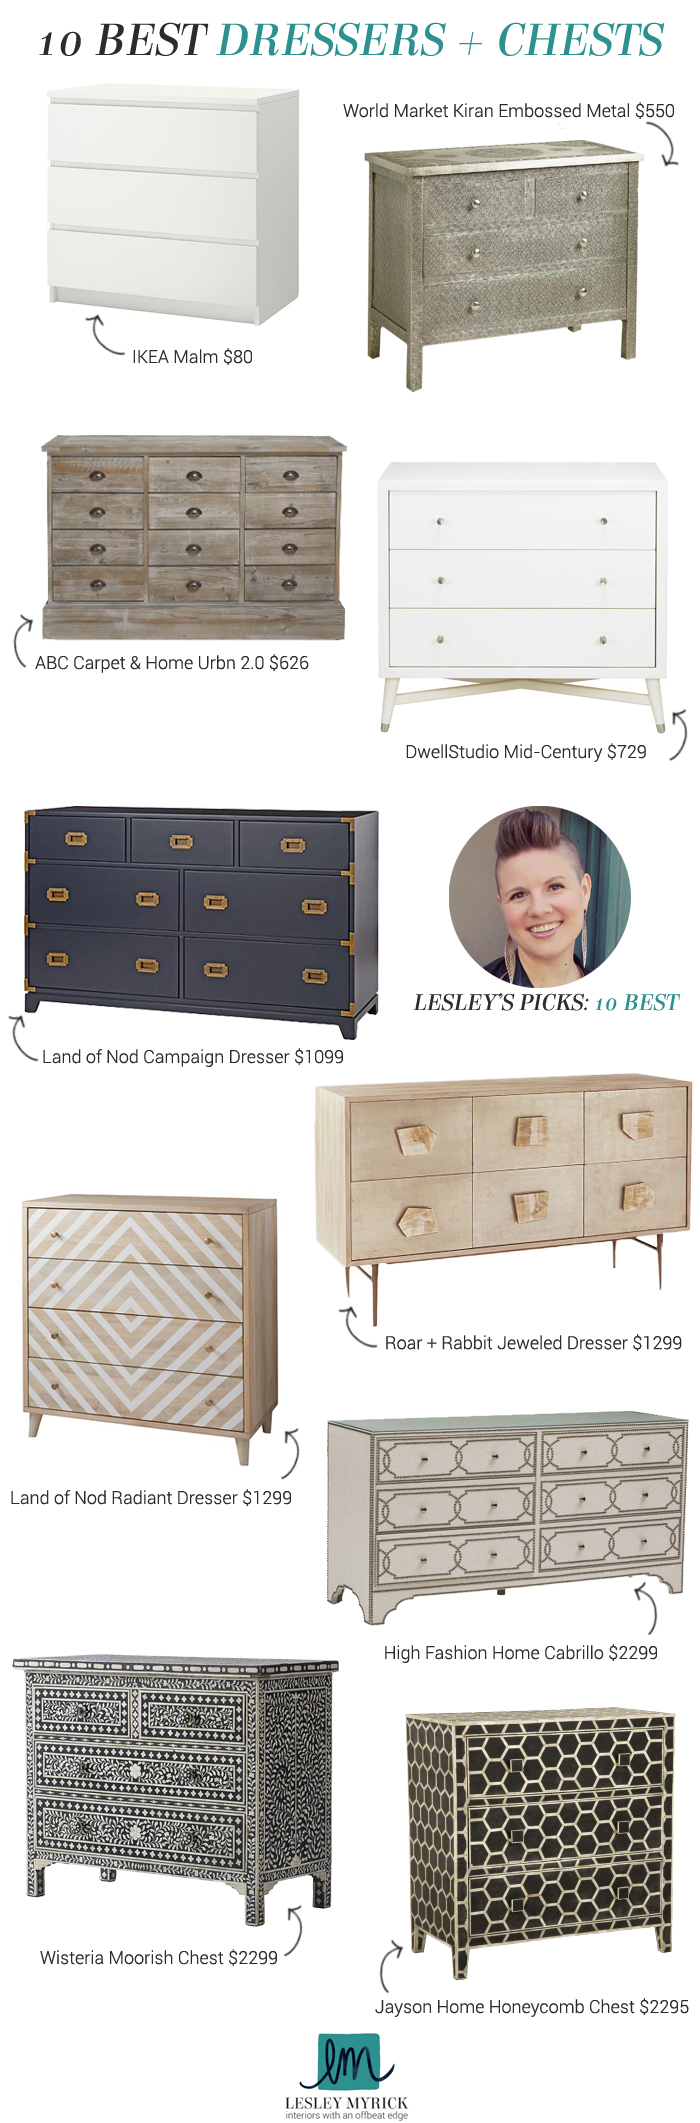 Lesley's Picks: 10 Best Dressers + Chests